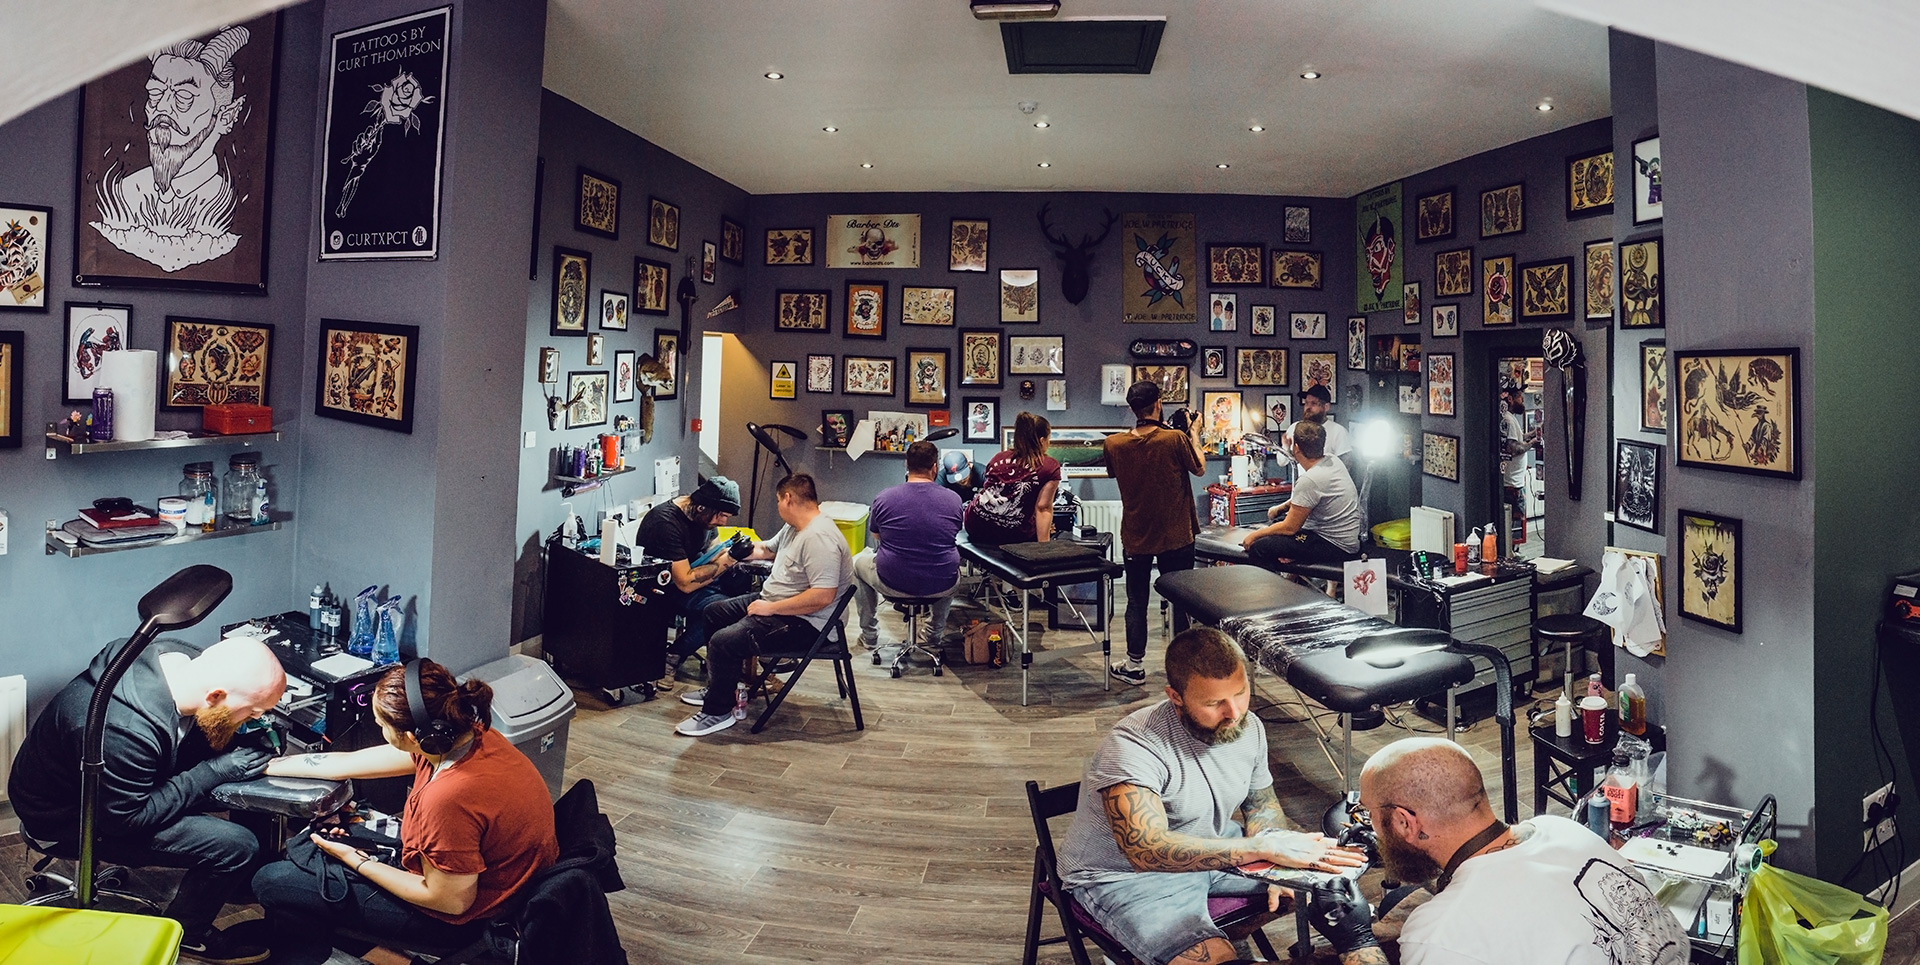 Contact Us - To book an appointment or to discuss your next tattoo please don't hesitate to contact us using the form on the right. Alternatively feel free to give us a bell during opening hours, hit us up on Facebook, or drop in to the studio for a chat!